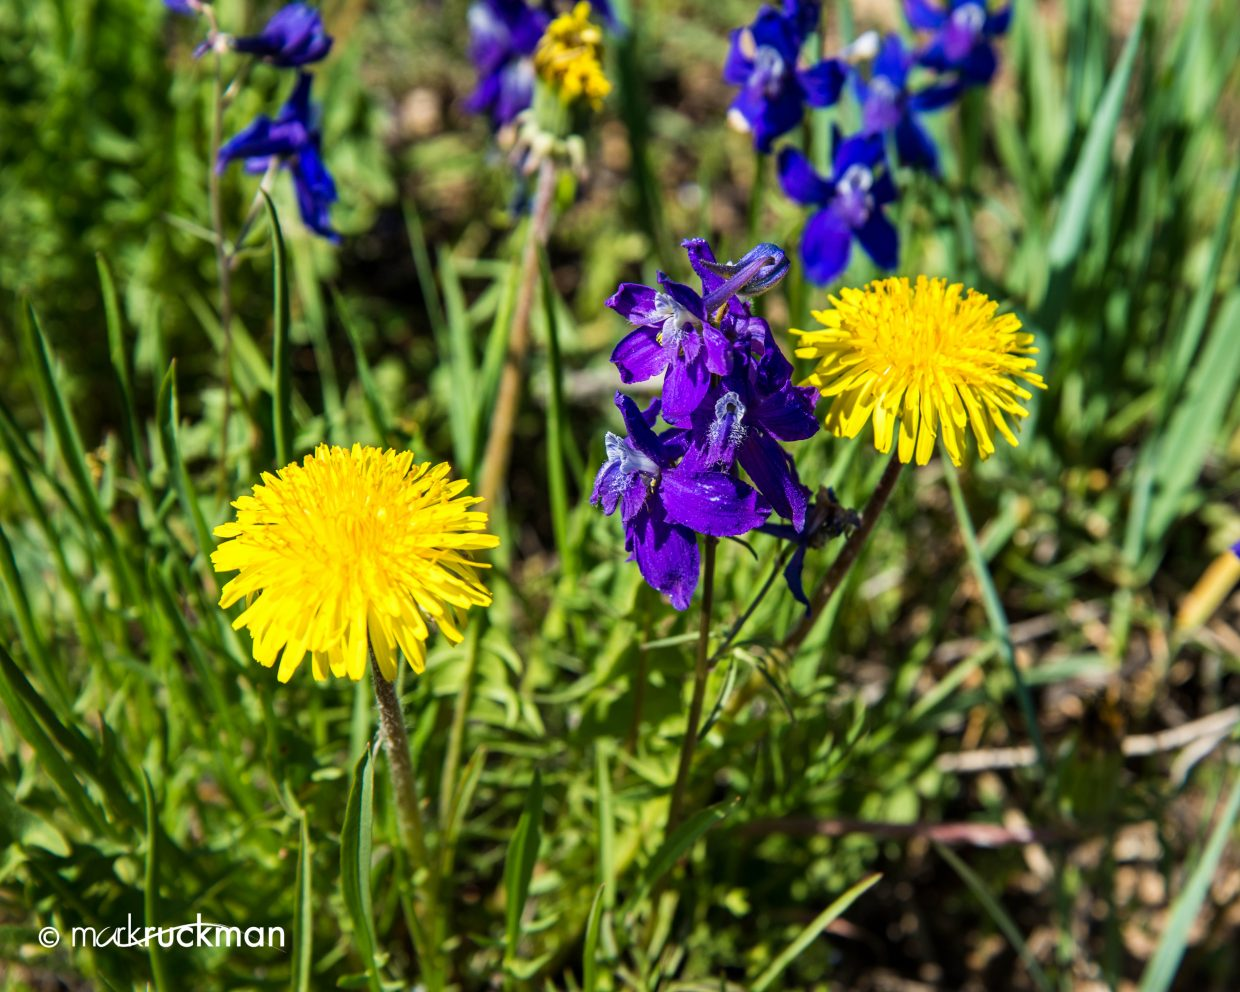 During a drive I saw a breath taking mix of colors along the edge of the road created by dandelions and early larkspur. Submitted by: Mark Ruckman